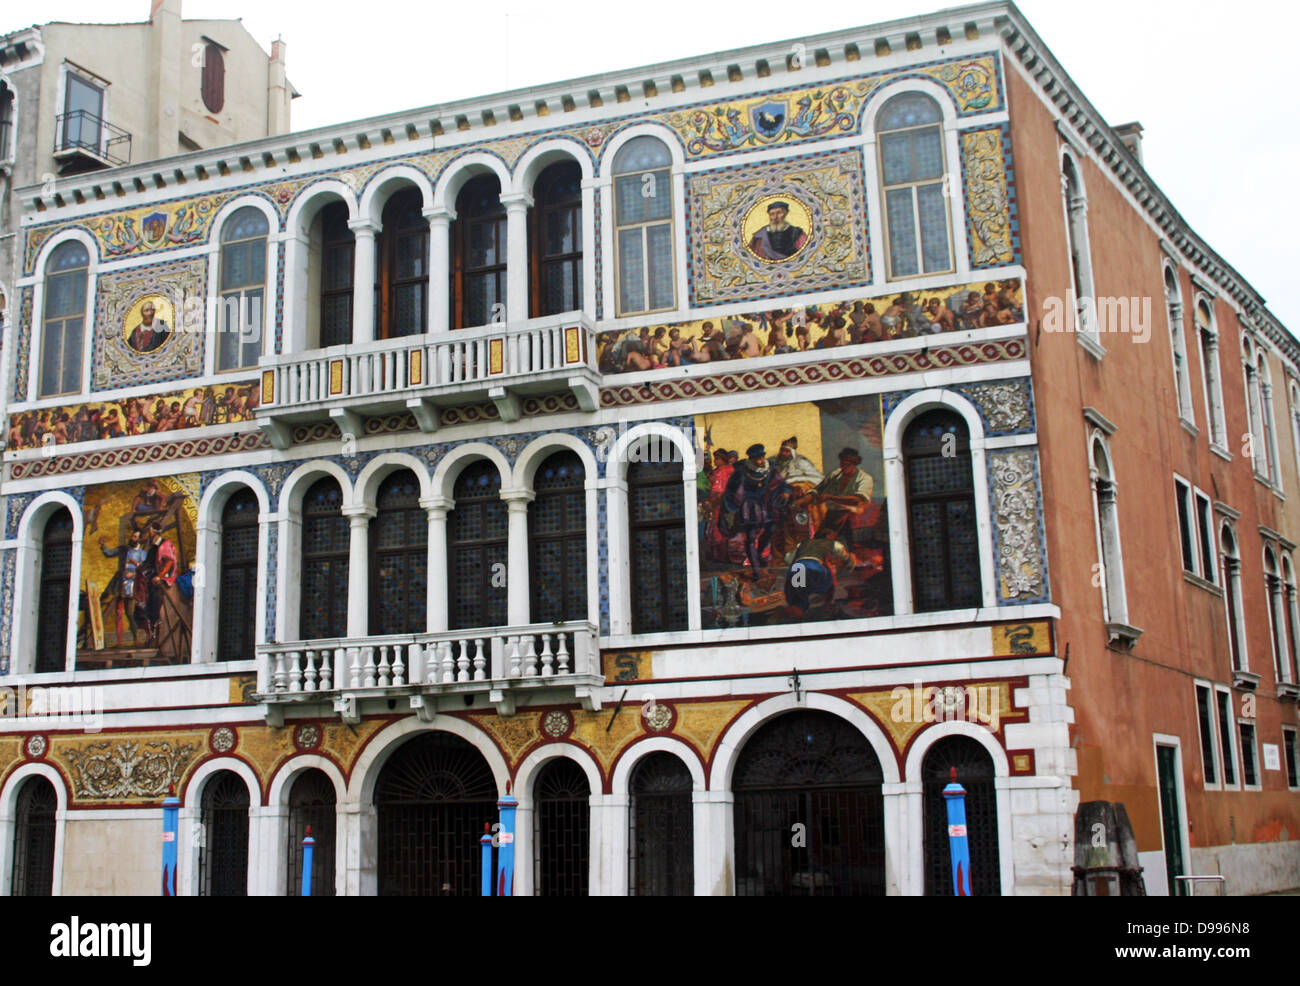 Facade of a sixteenth century Pallazio on the Grand Canal in Venice, Italy - Stock Image